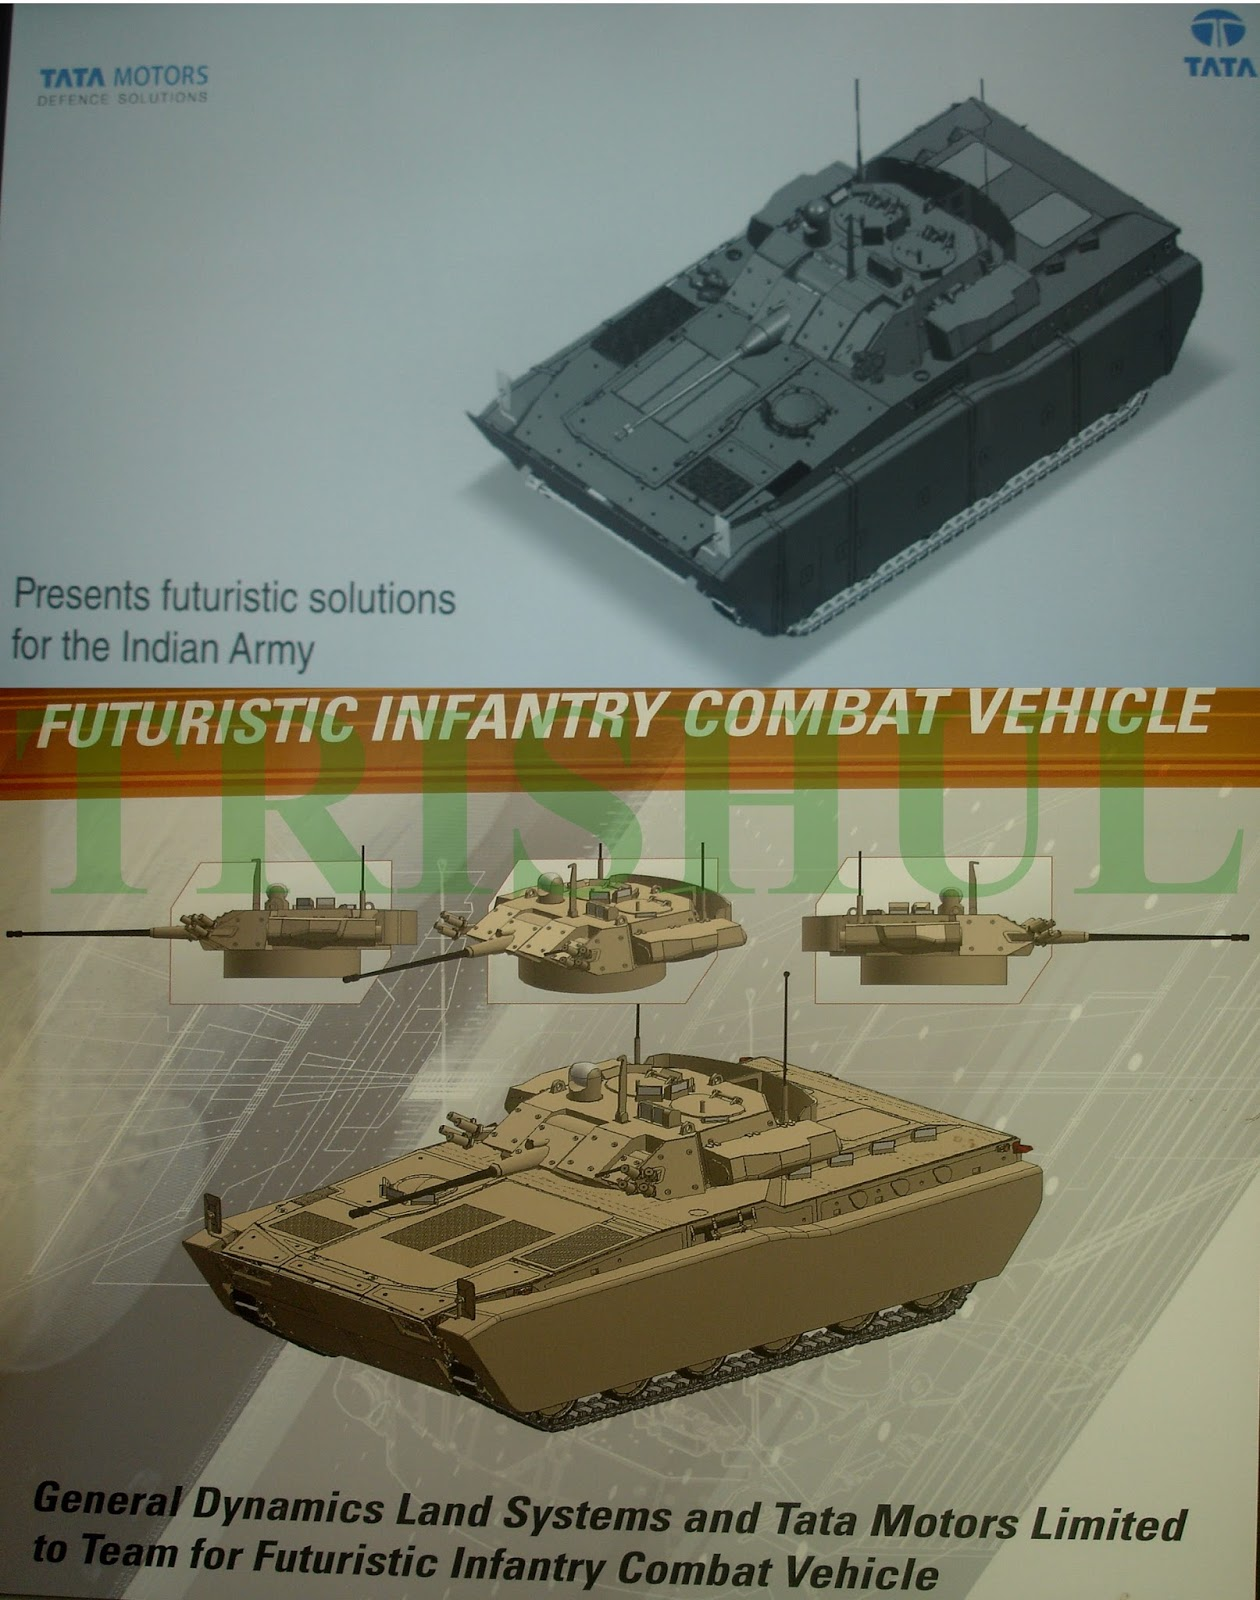 TATA+Motors-General+Dynamics+Land+Systems+Proposal+for+Tracked+FICV.jpg